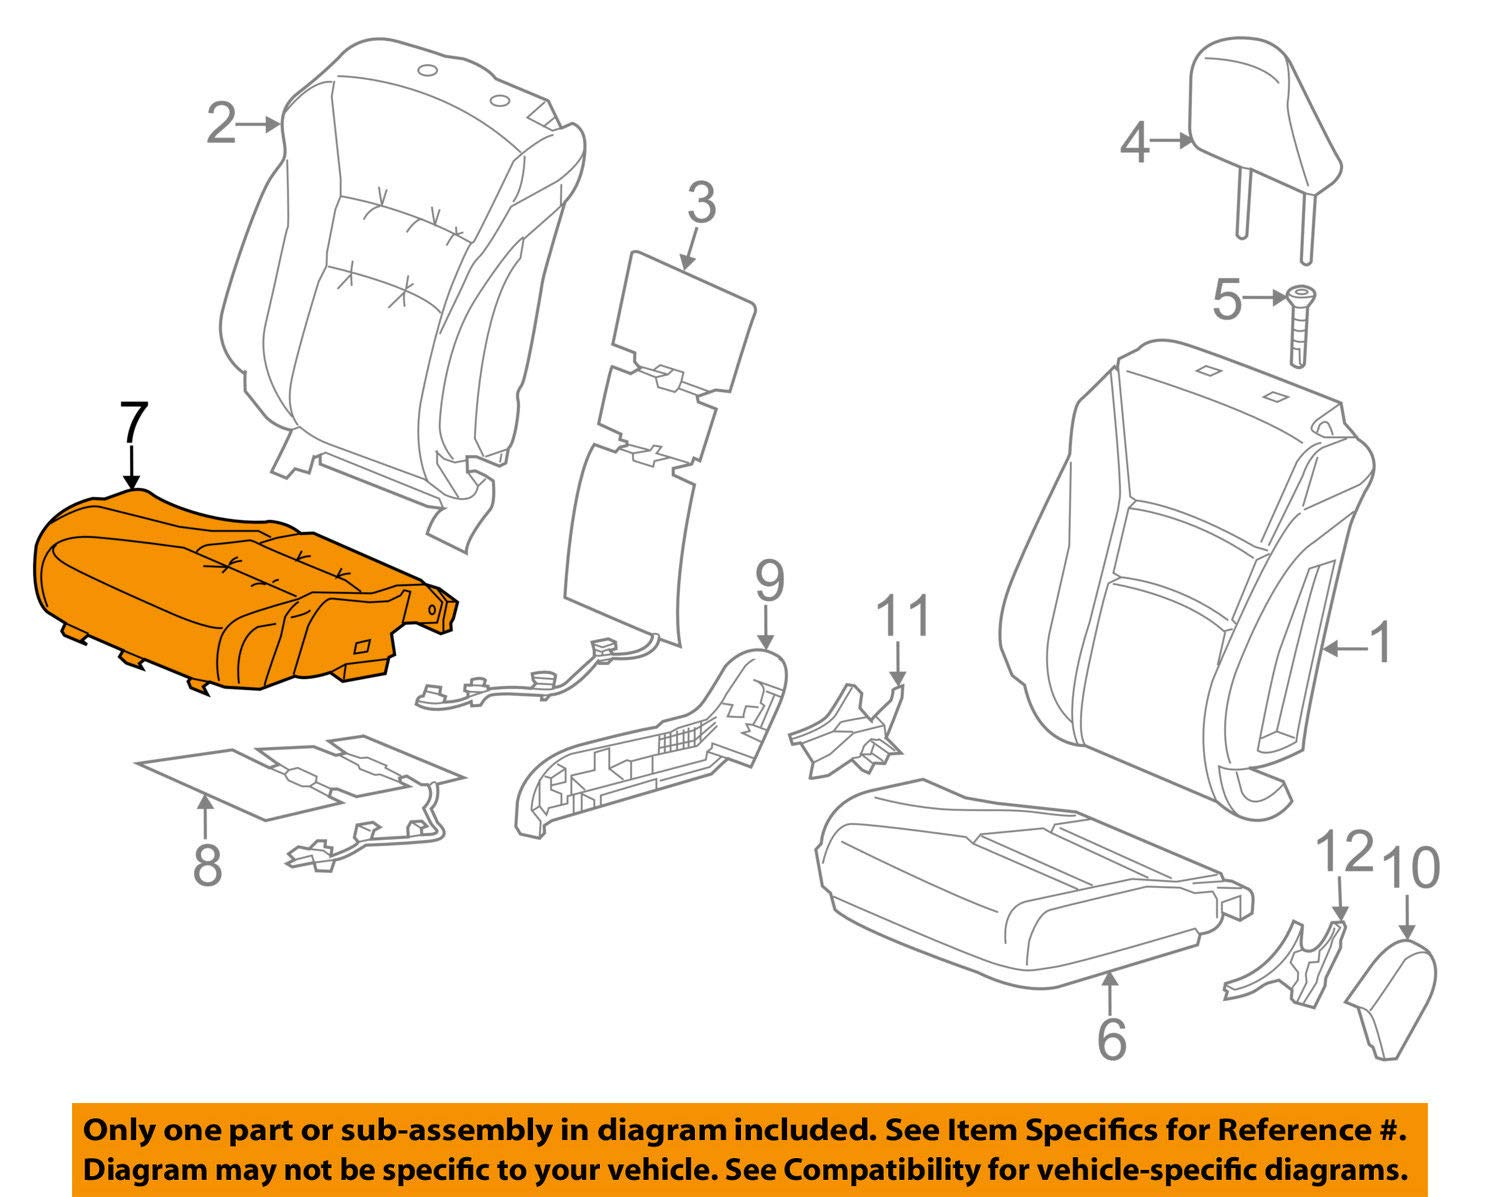 TOYOTA Genuine 71518-52F10-C0 Sear Cushion